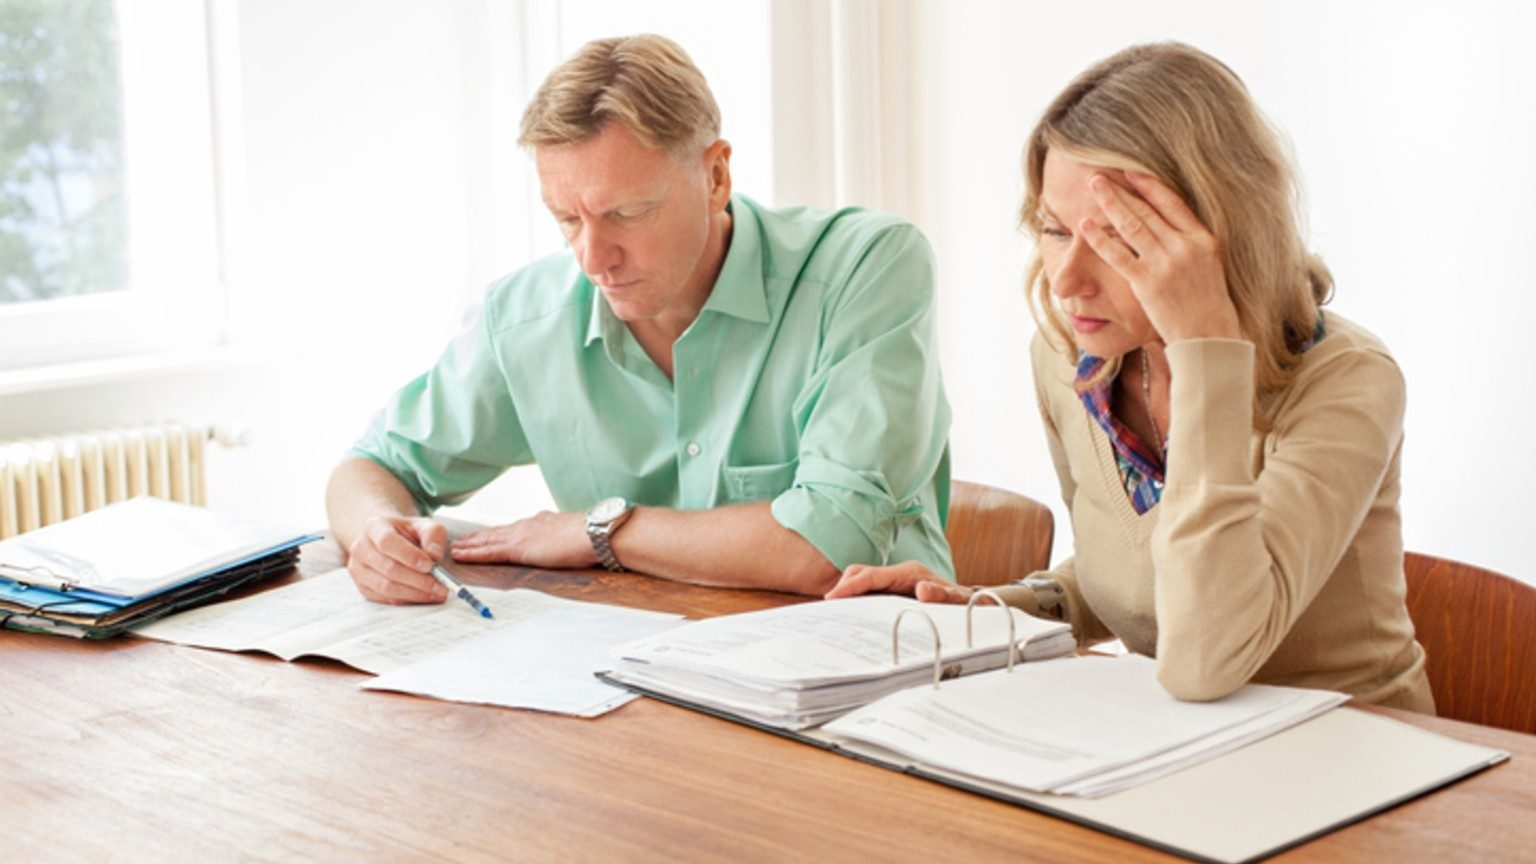 Couple looking stressed over paperwork and debt